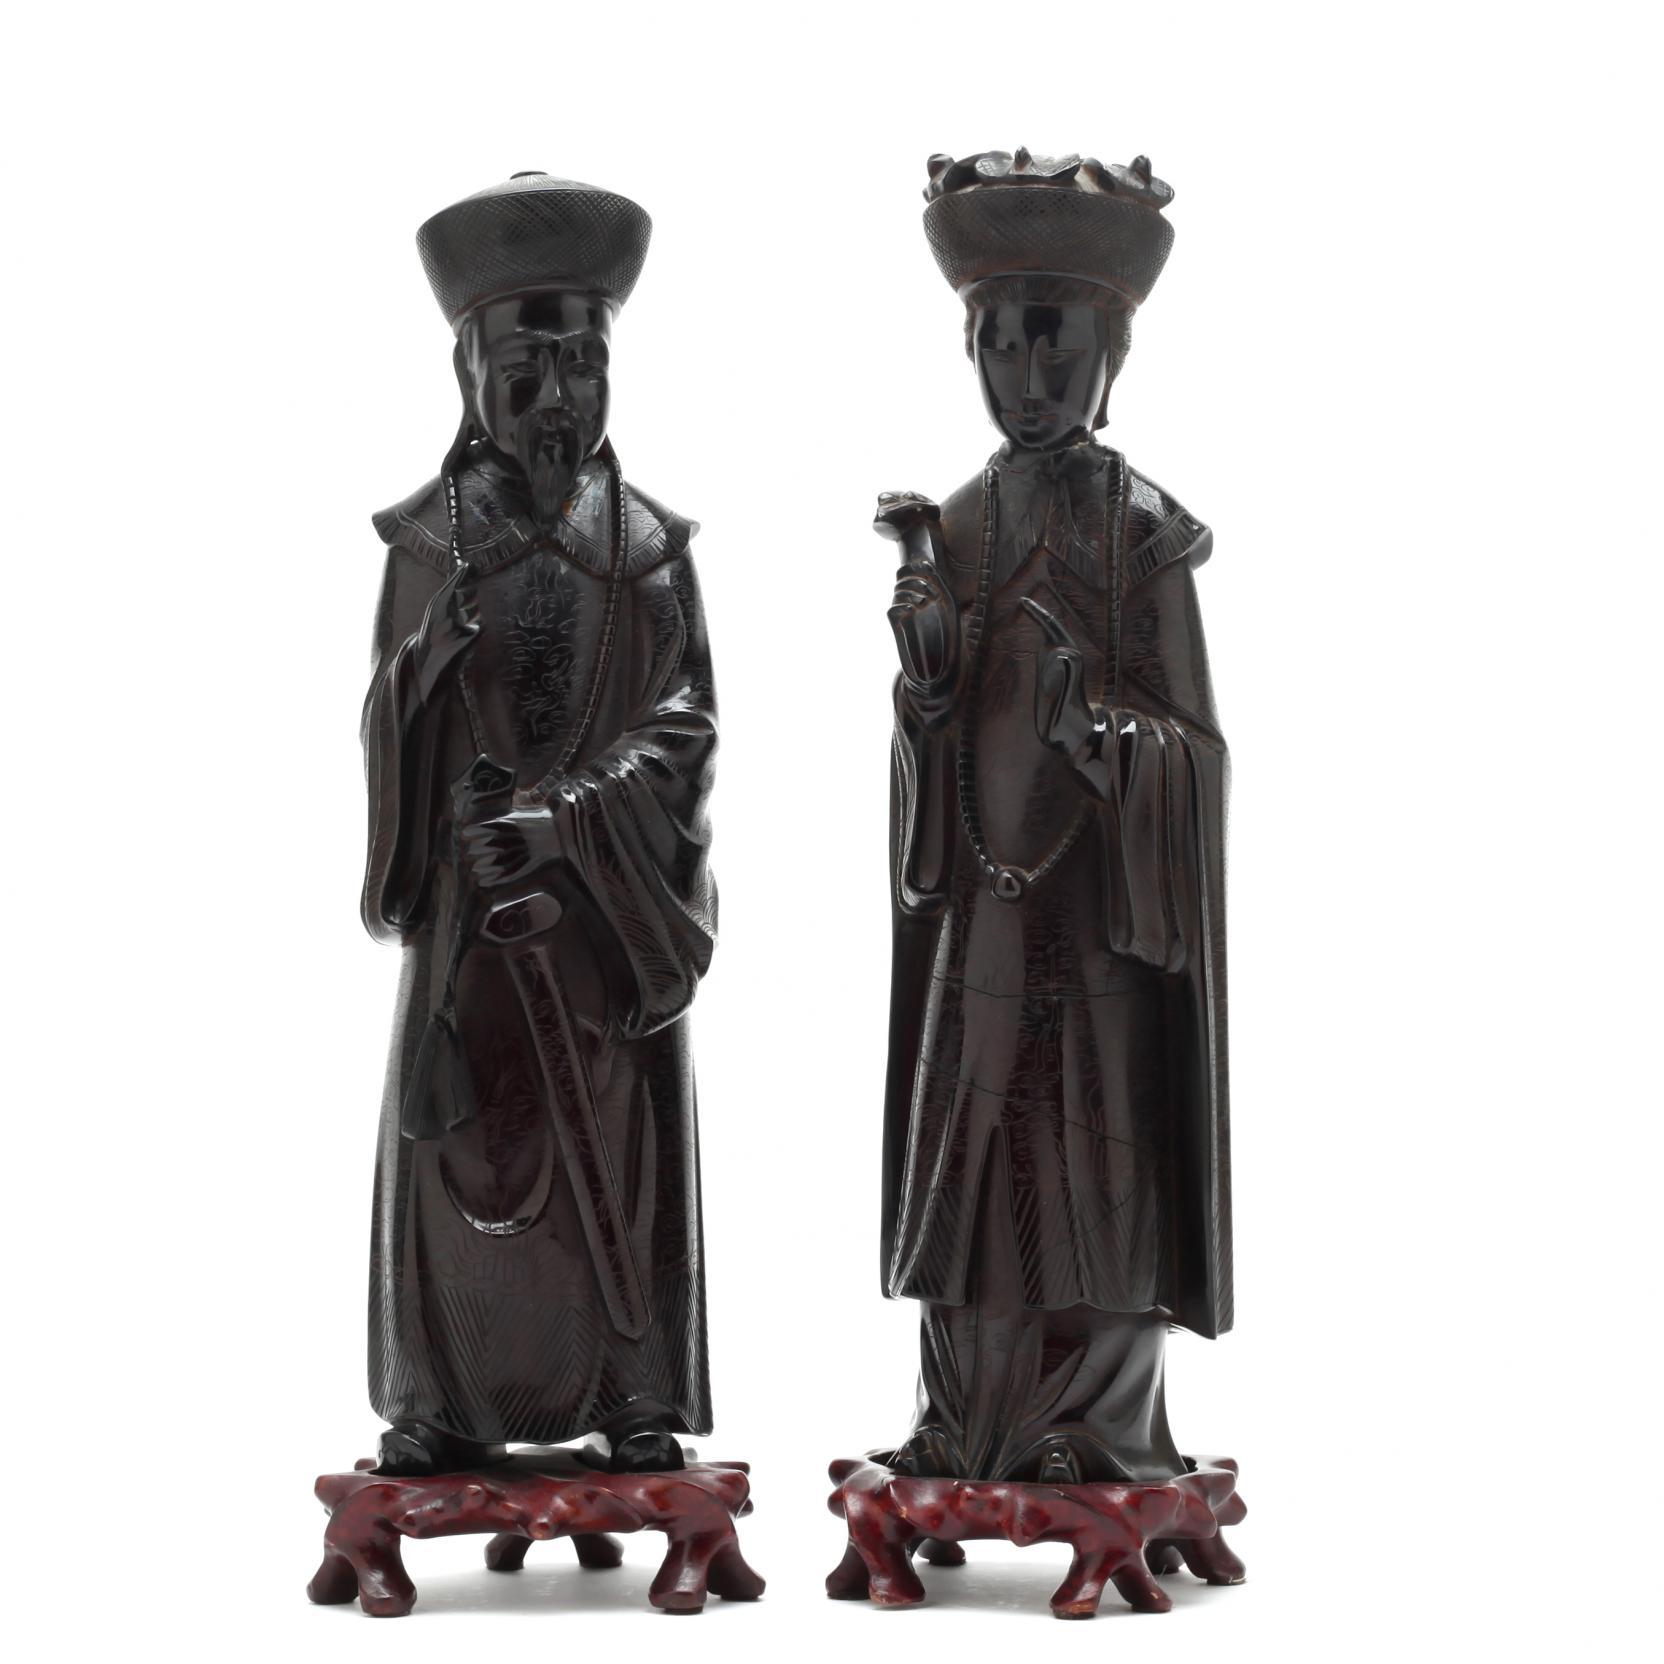 a-pair-of-chinese-emperor-and-empress-statues